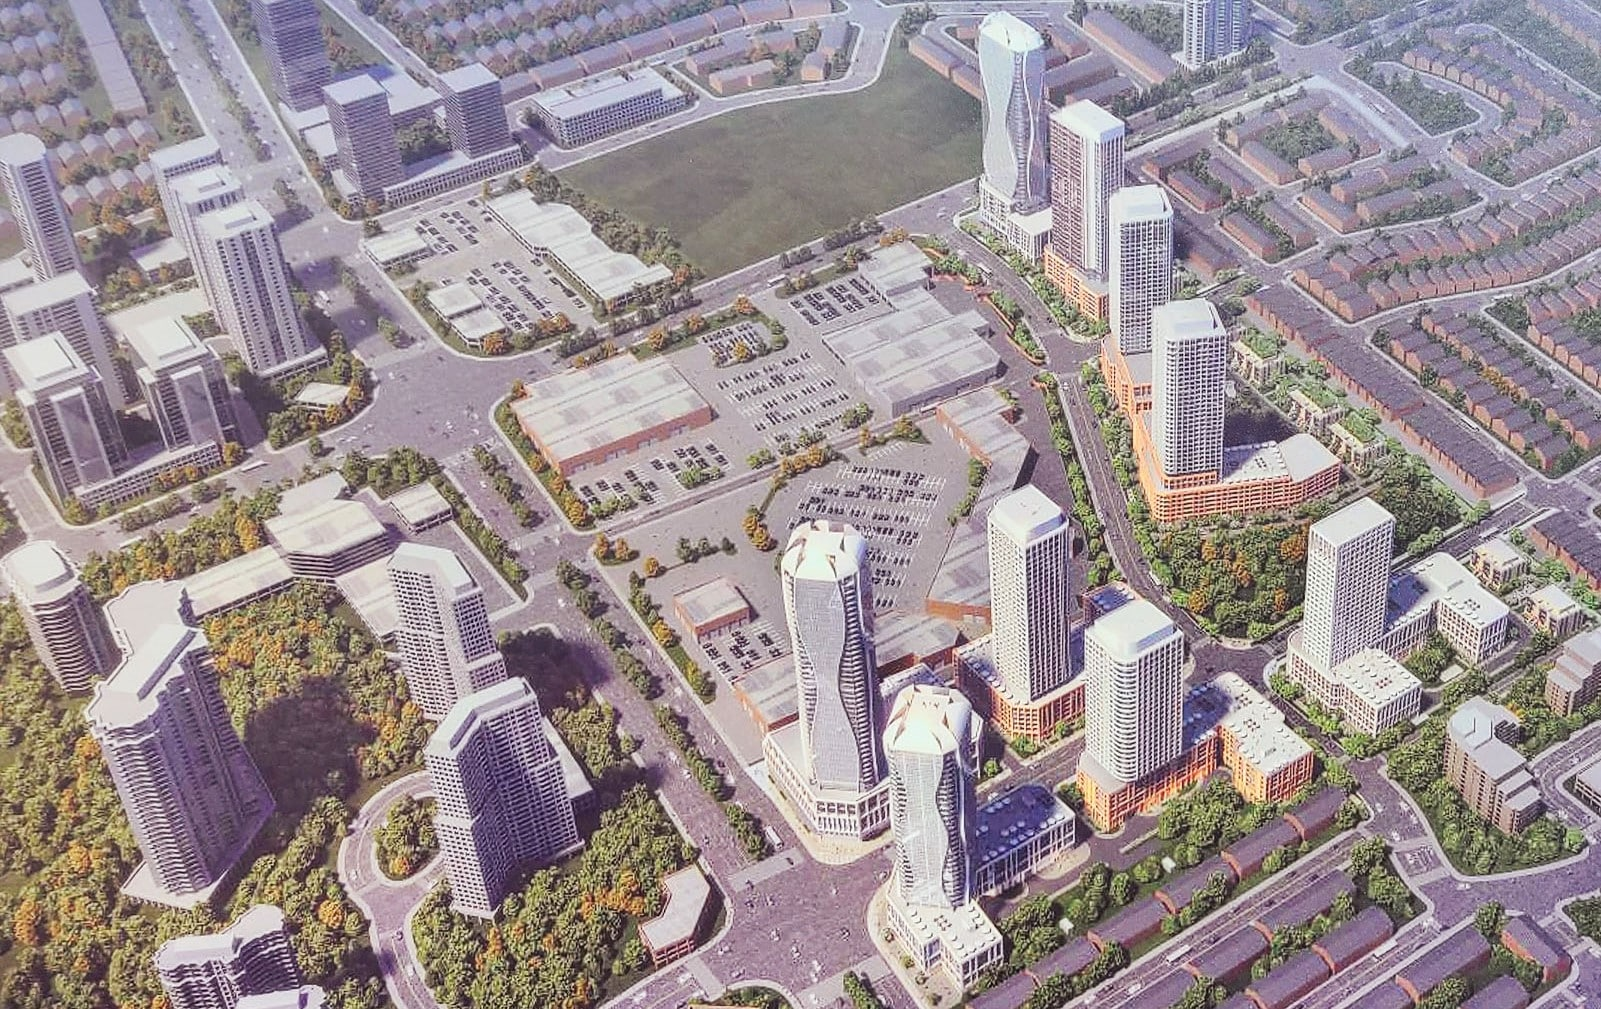 [object object] 4615 Hurontario St and Elia Condos Mississauga 4615 hurontario st 136 eglinton ave e elia condos mississauga for sale